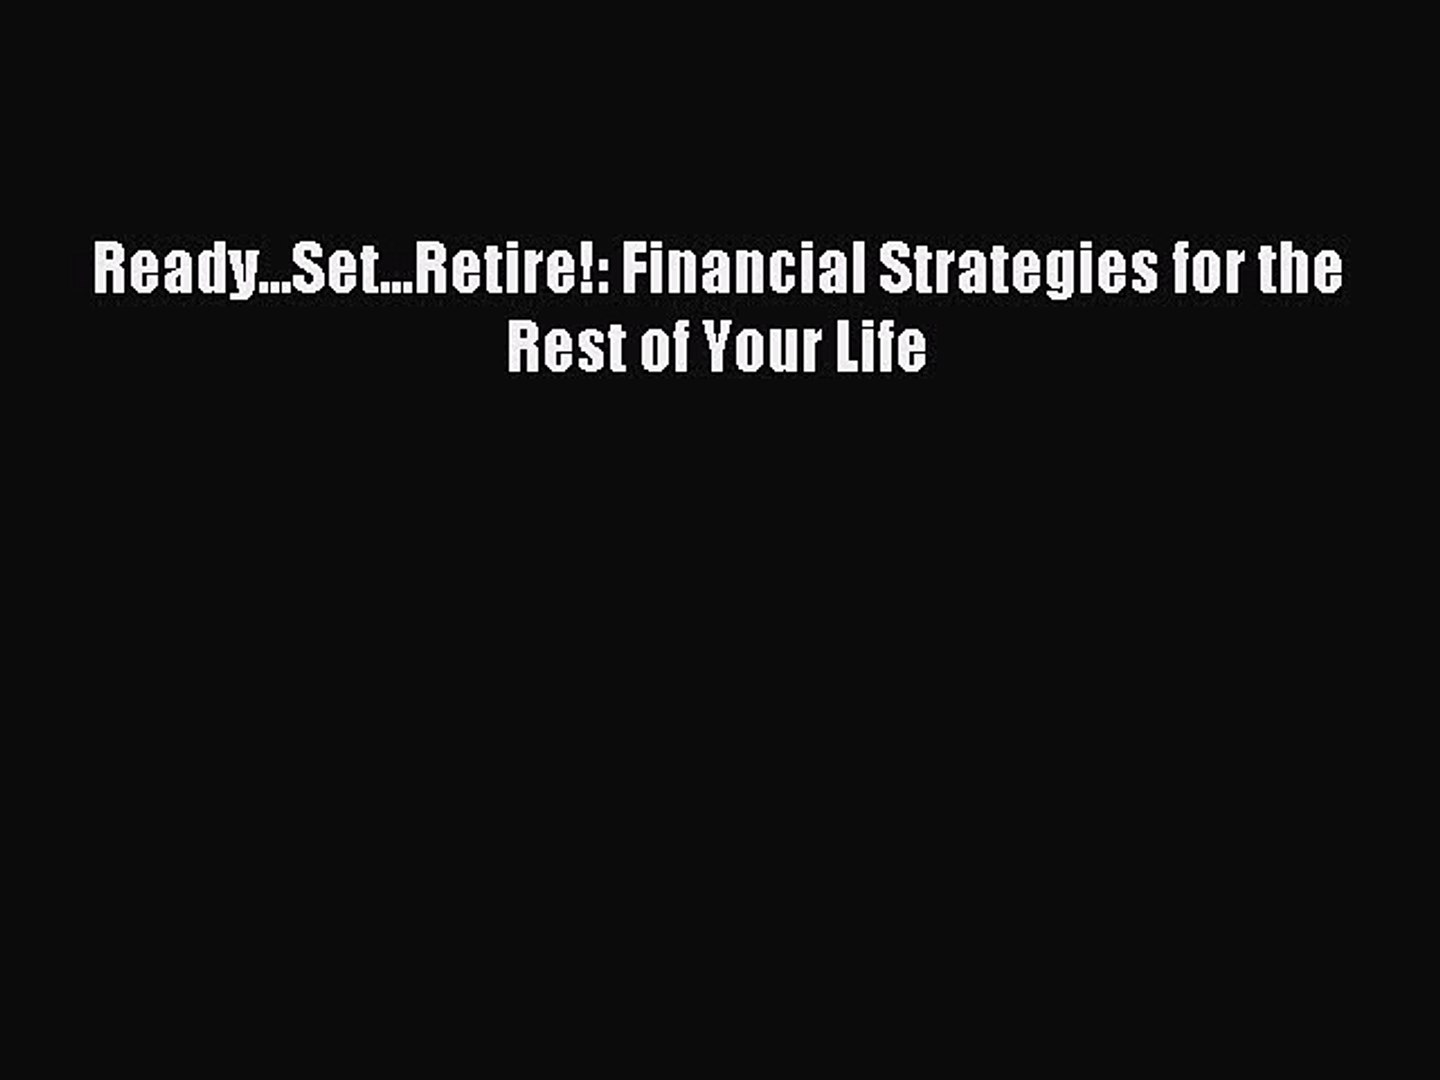 Ready...Set...Retire!: Financial Strategies for the Rest of Your Life